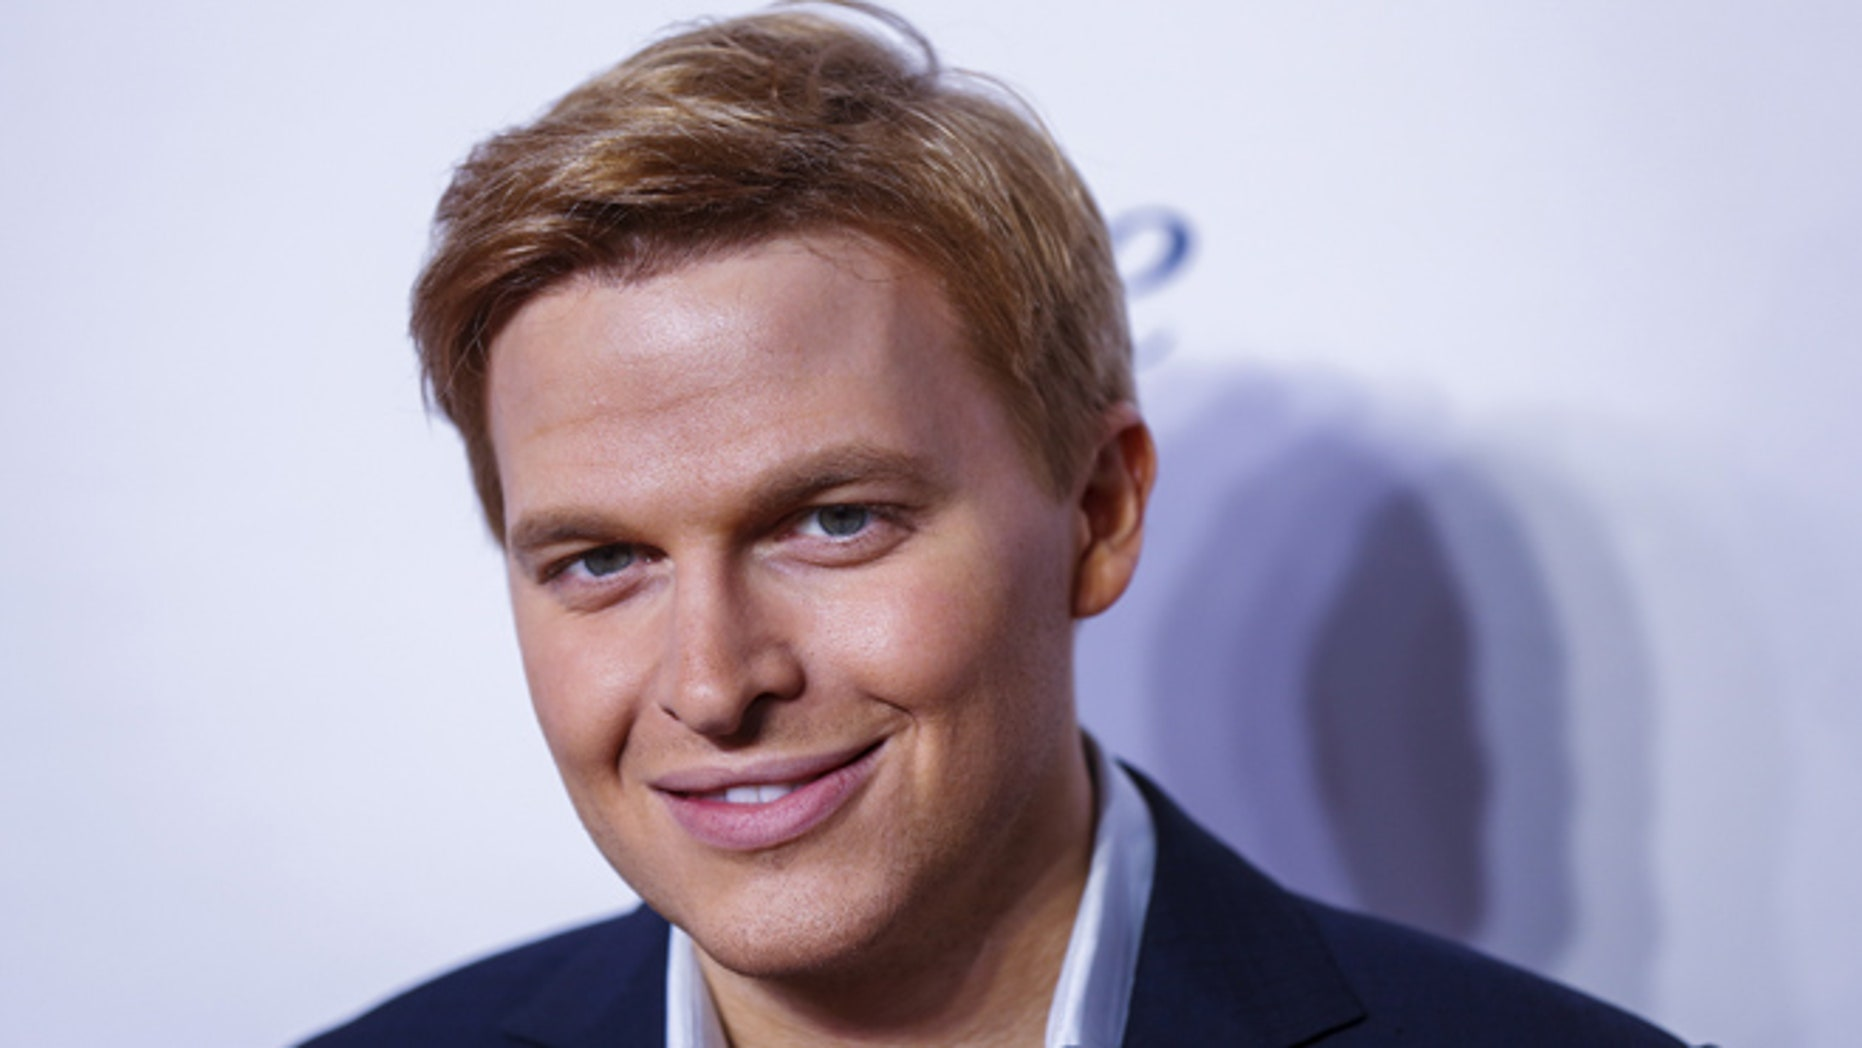 Ronan Farrow took a dig at his father Woody Allen on Instagram.